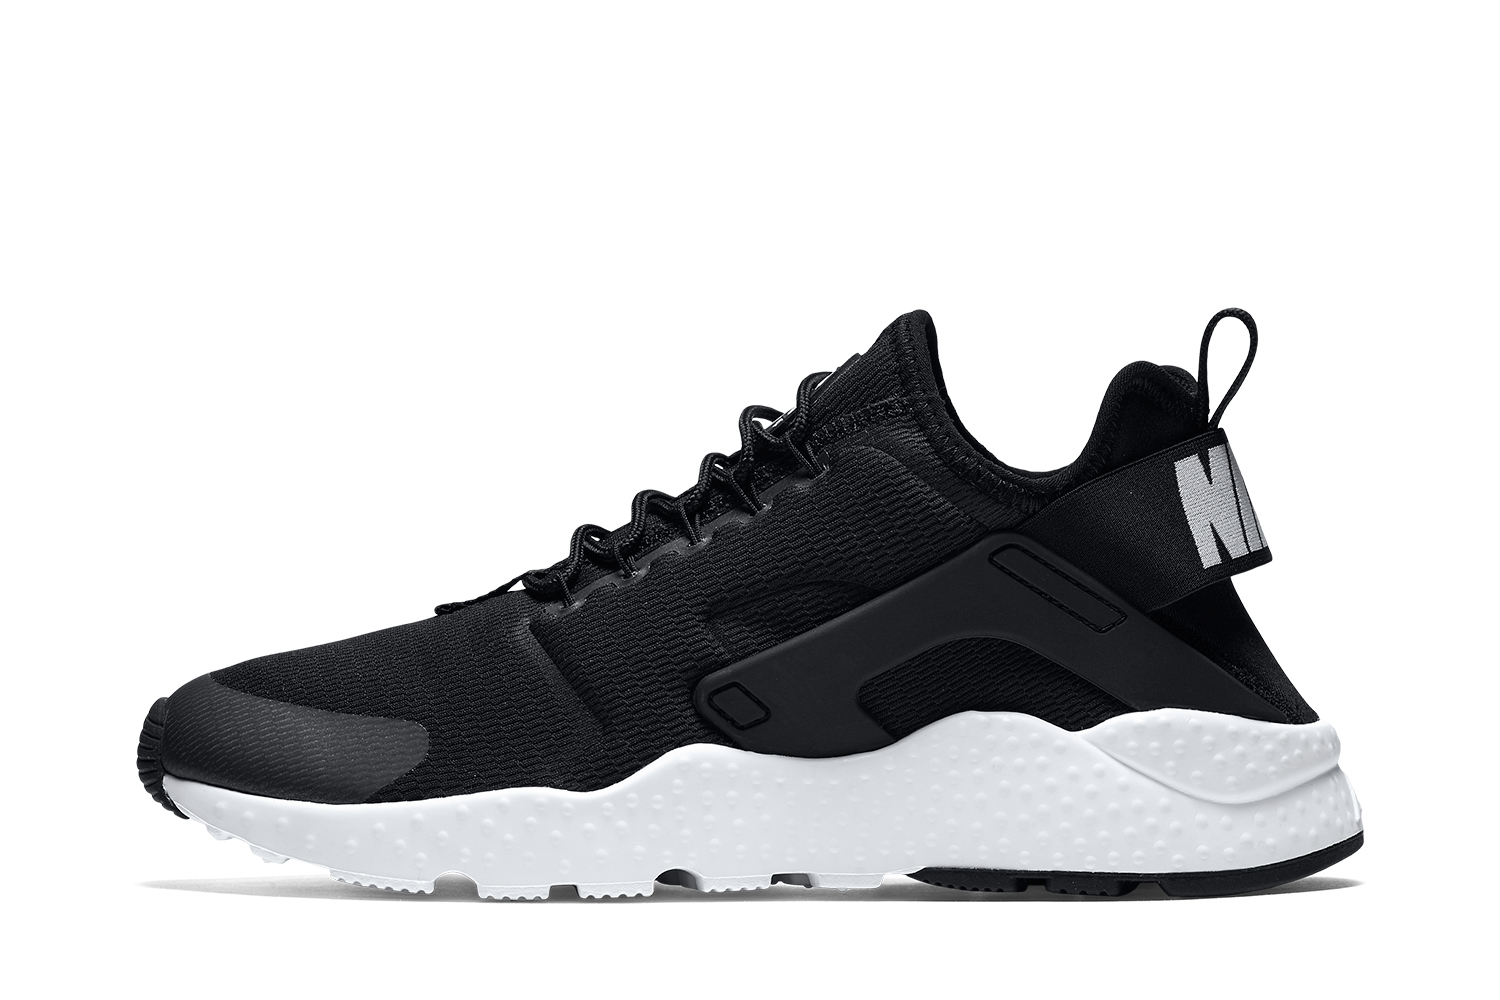 Huaraches Shoes Black And White